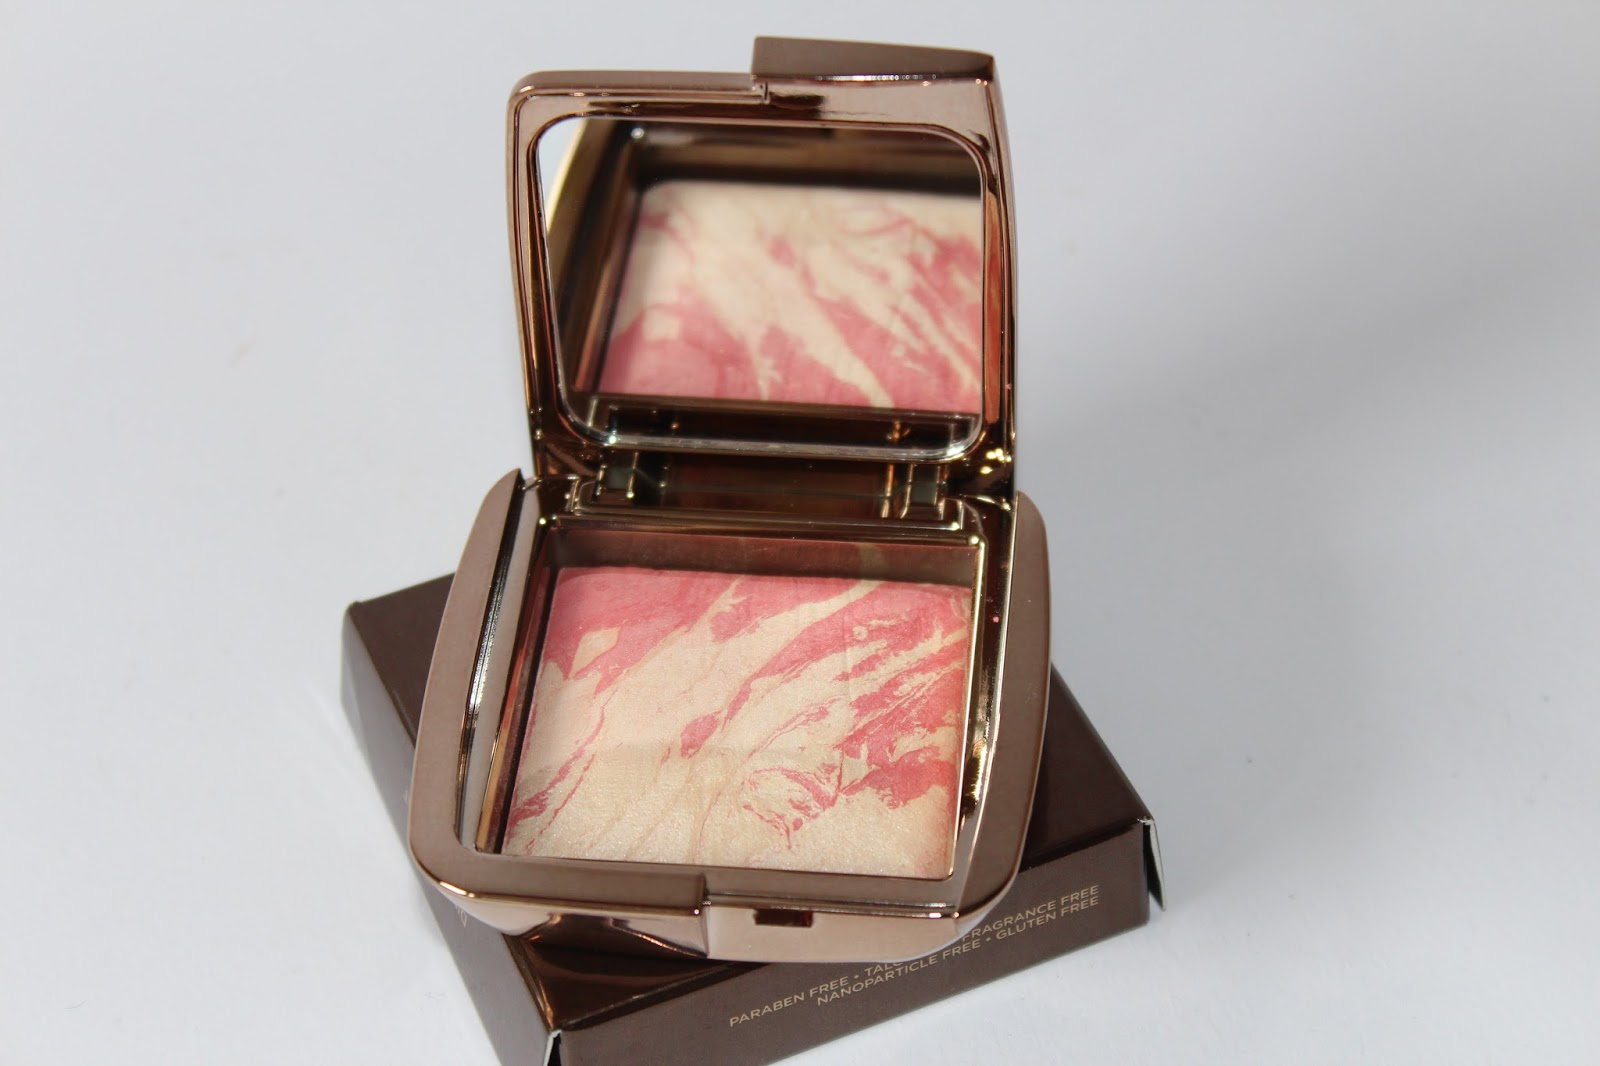 Hourglass Ambient Lighting Rumenilo Diffused Heat